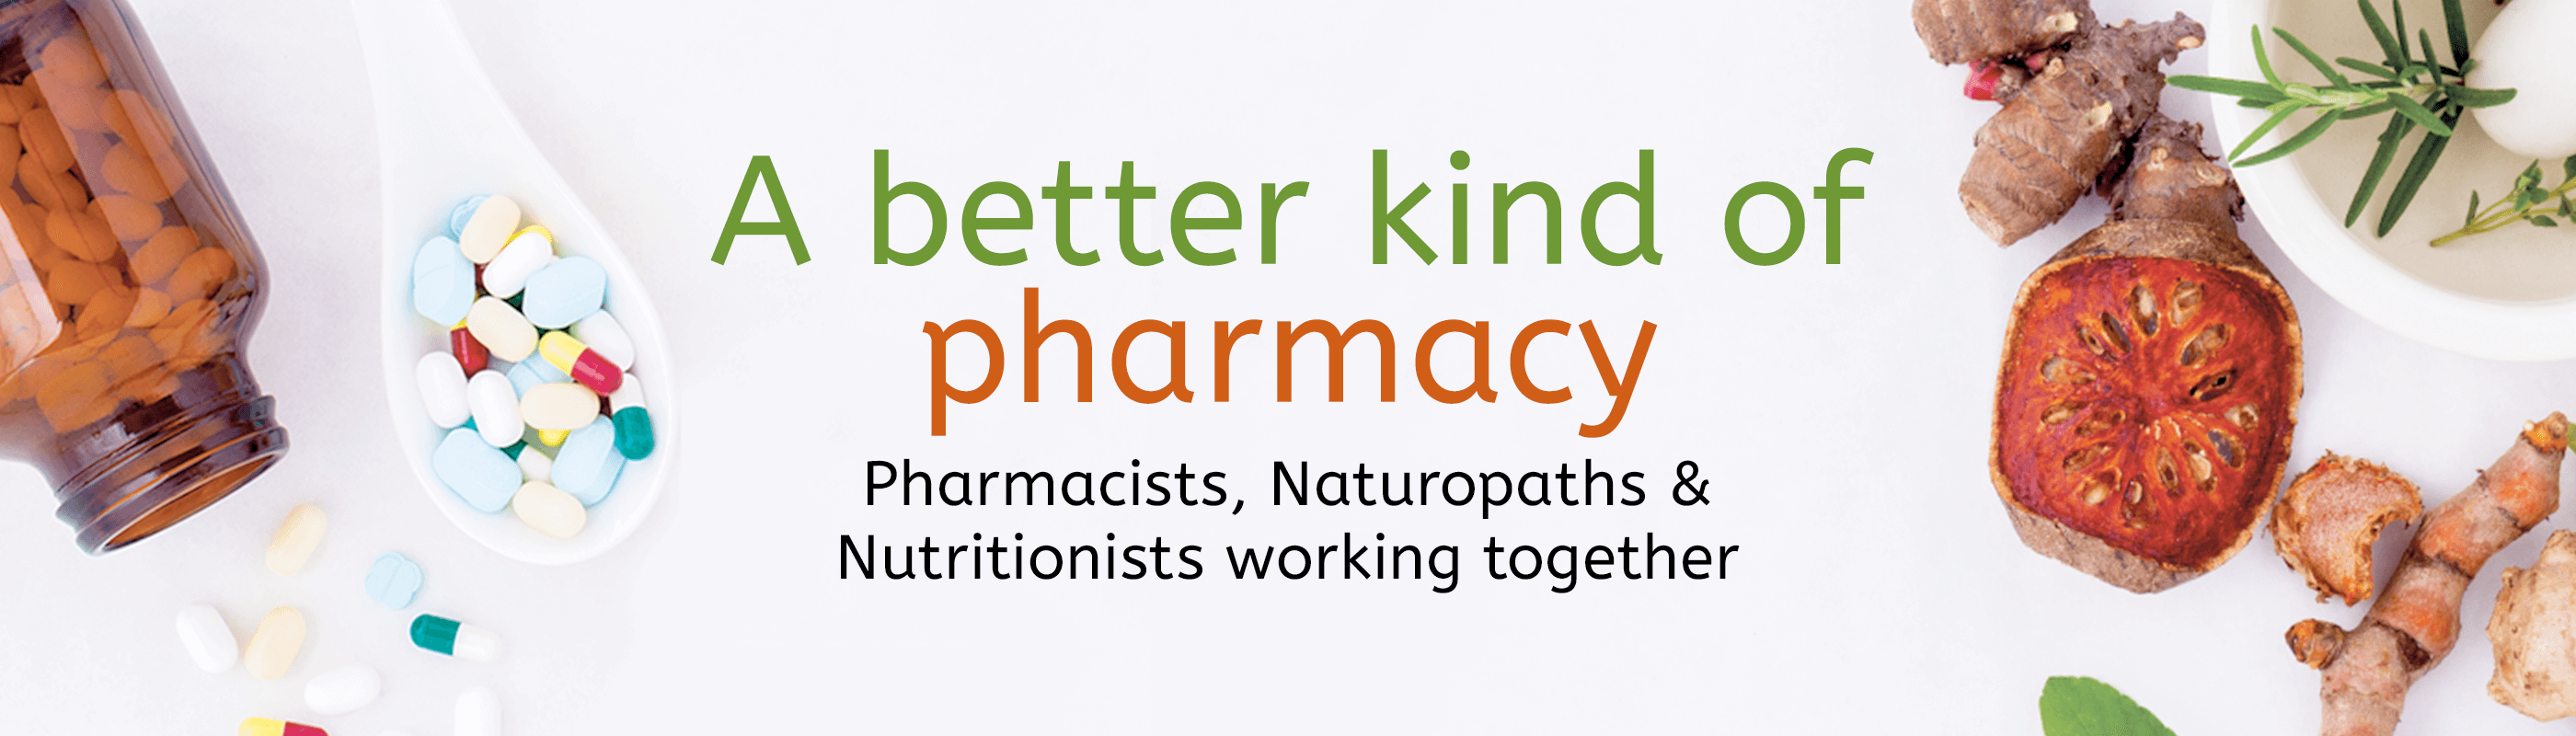 Better Kind of Pharmacy - Natural Chemist